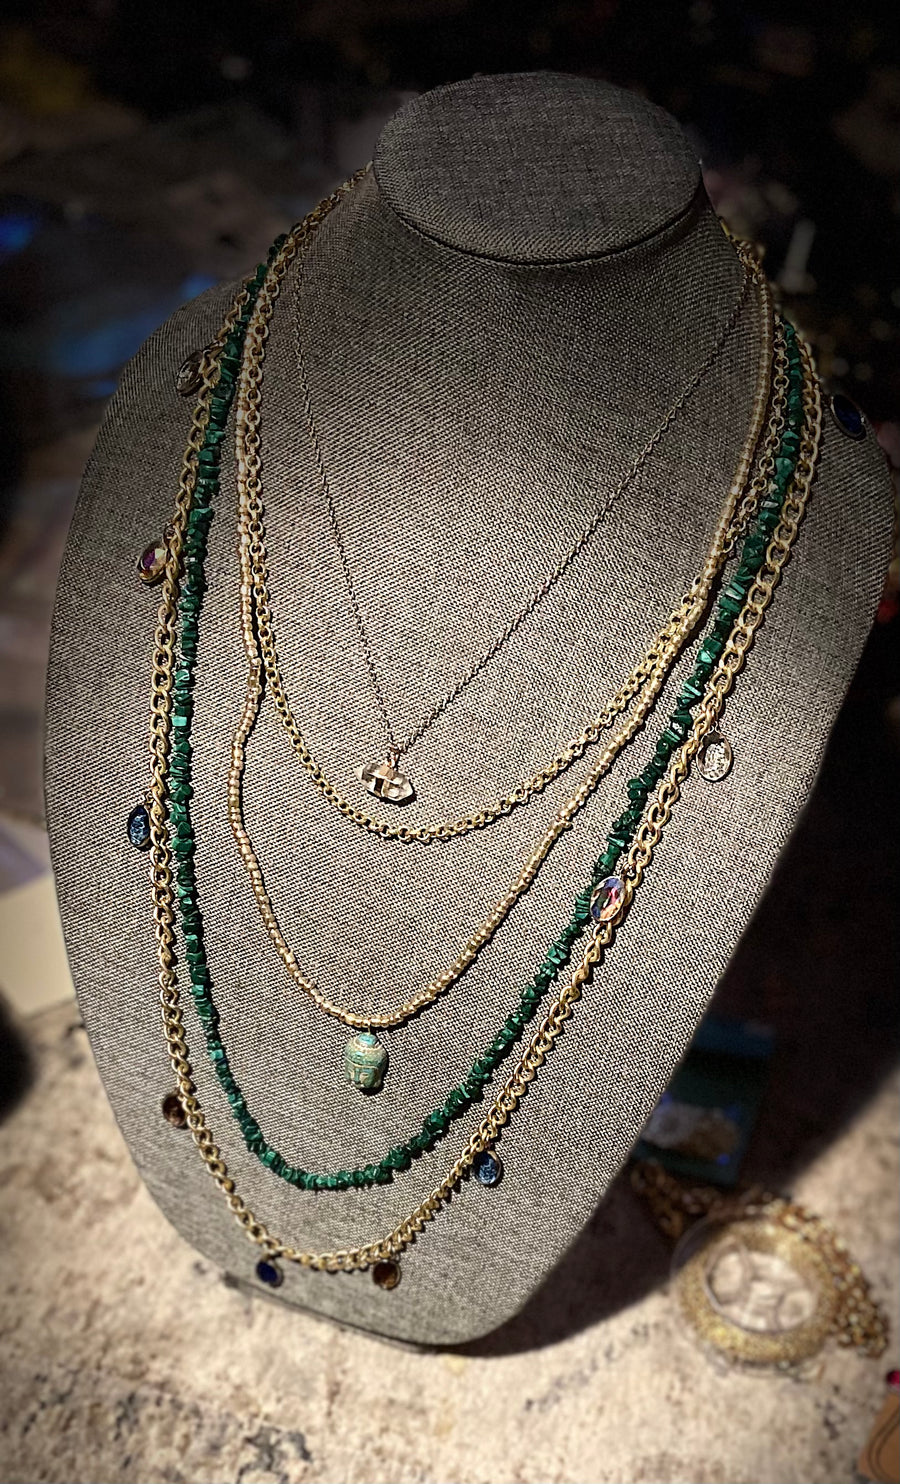 14kt Gold Filled and Genuine Turquoise Multi-Strand Necklace